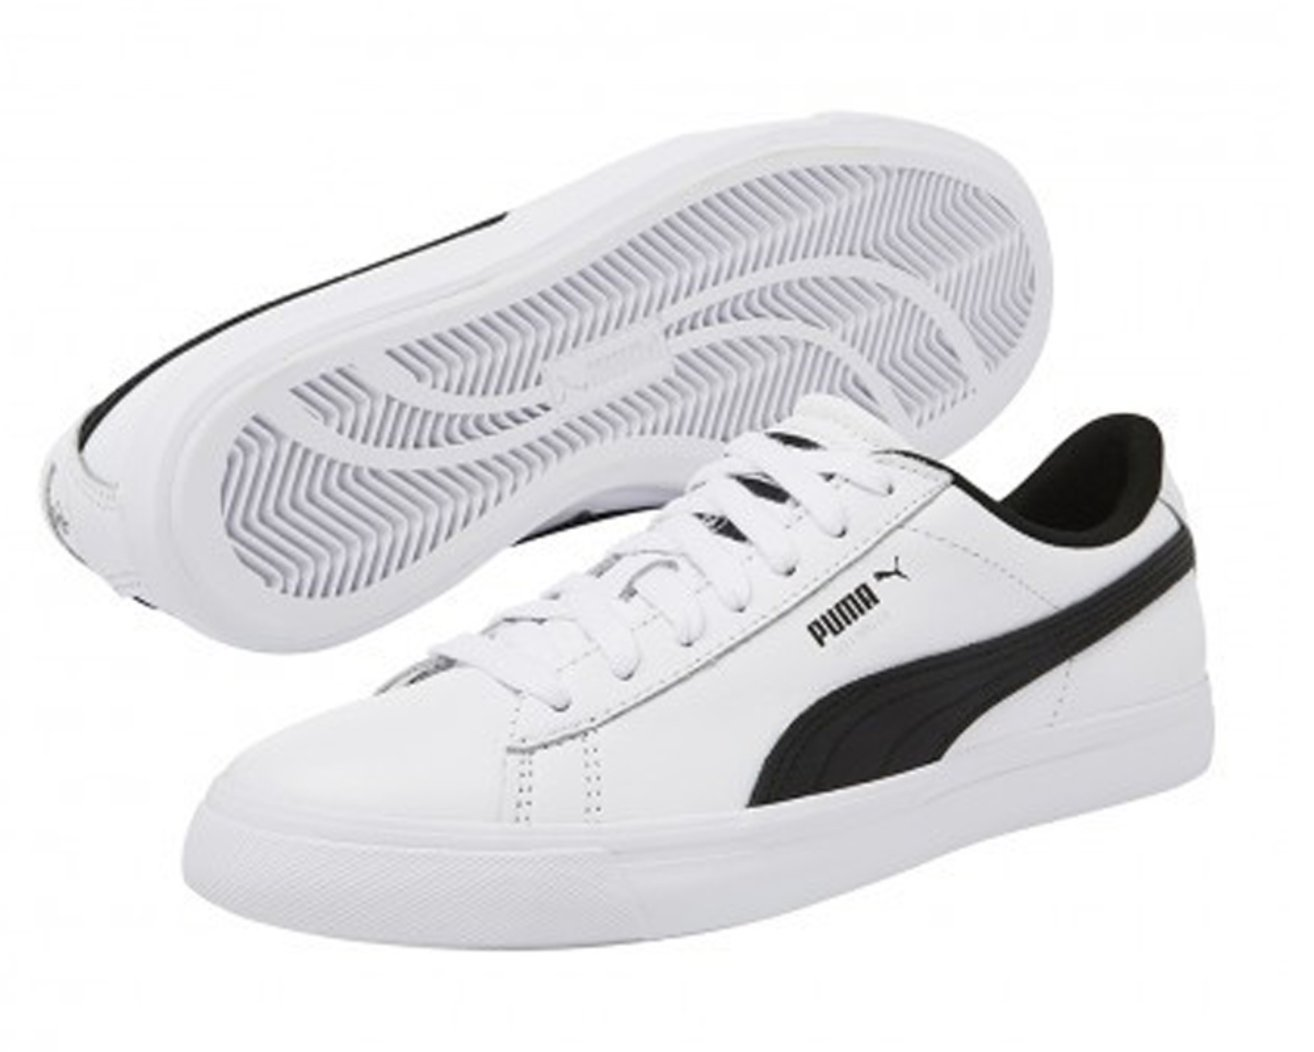 Puma x BTS Collaboration Court Star (366202)